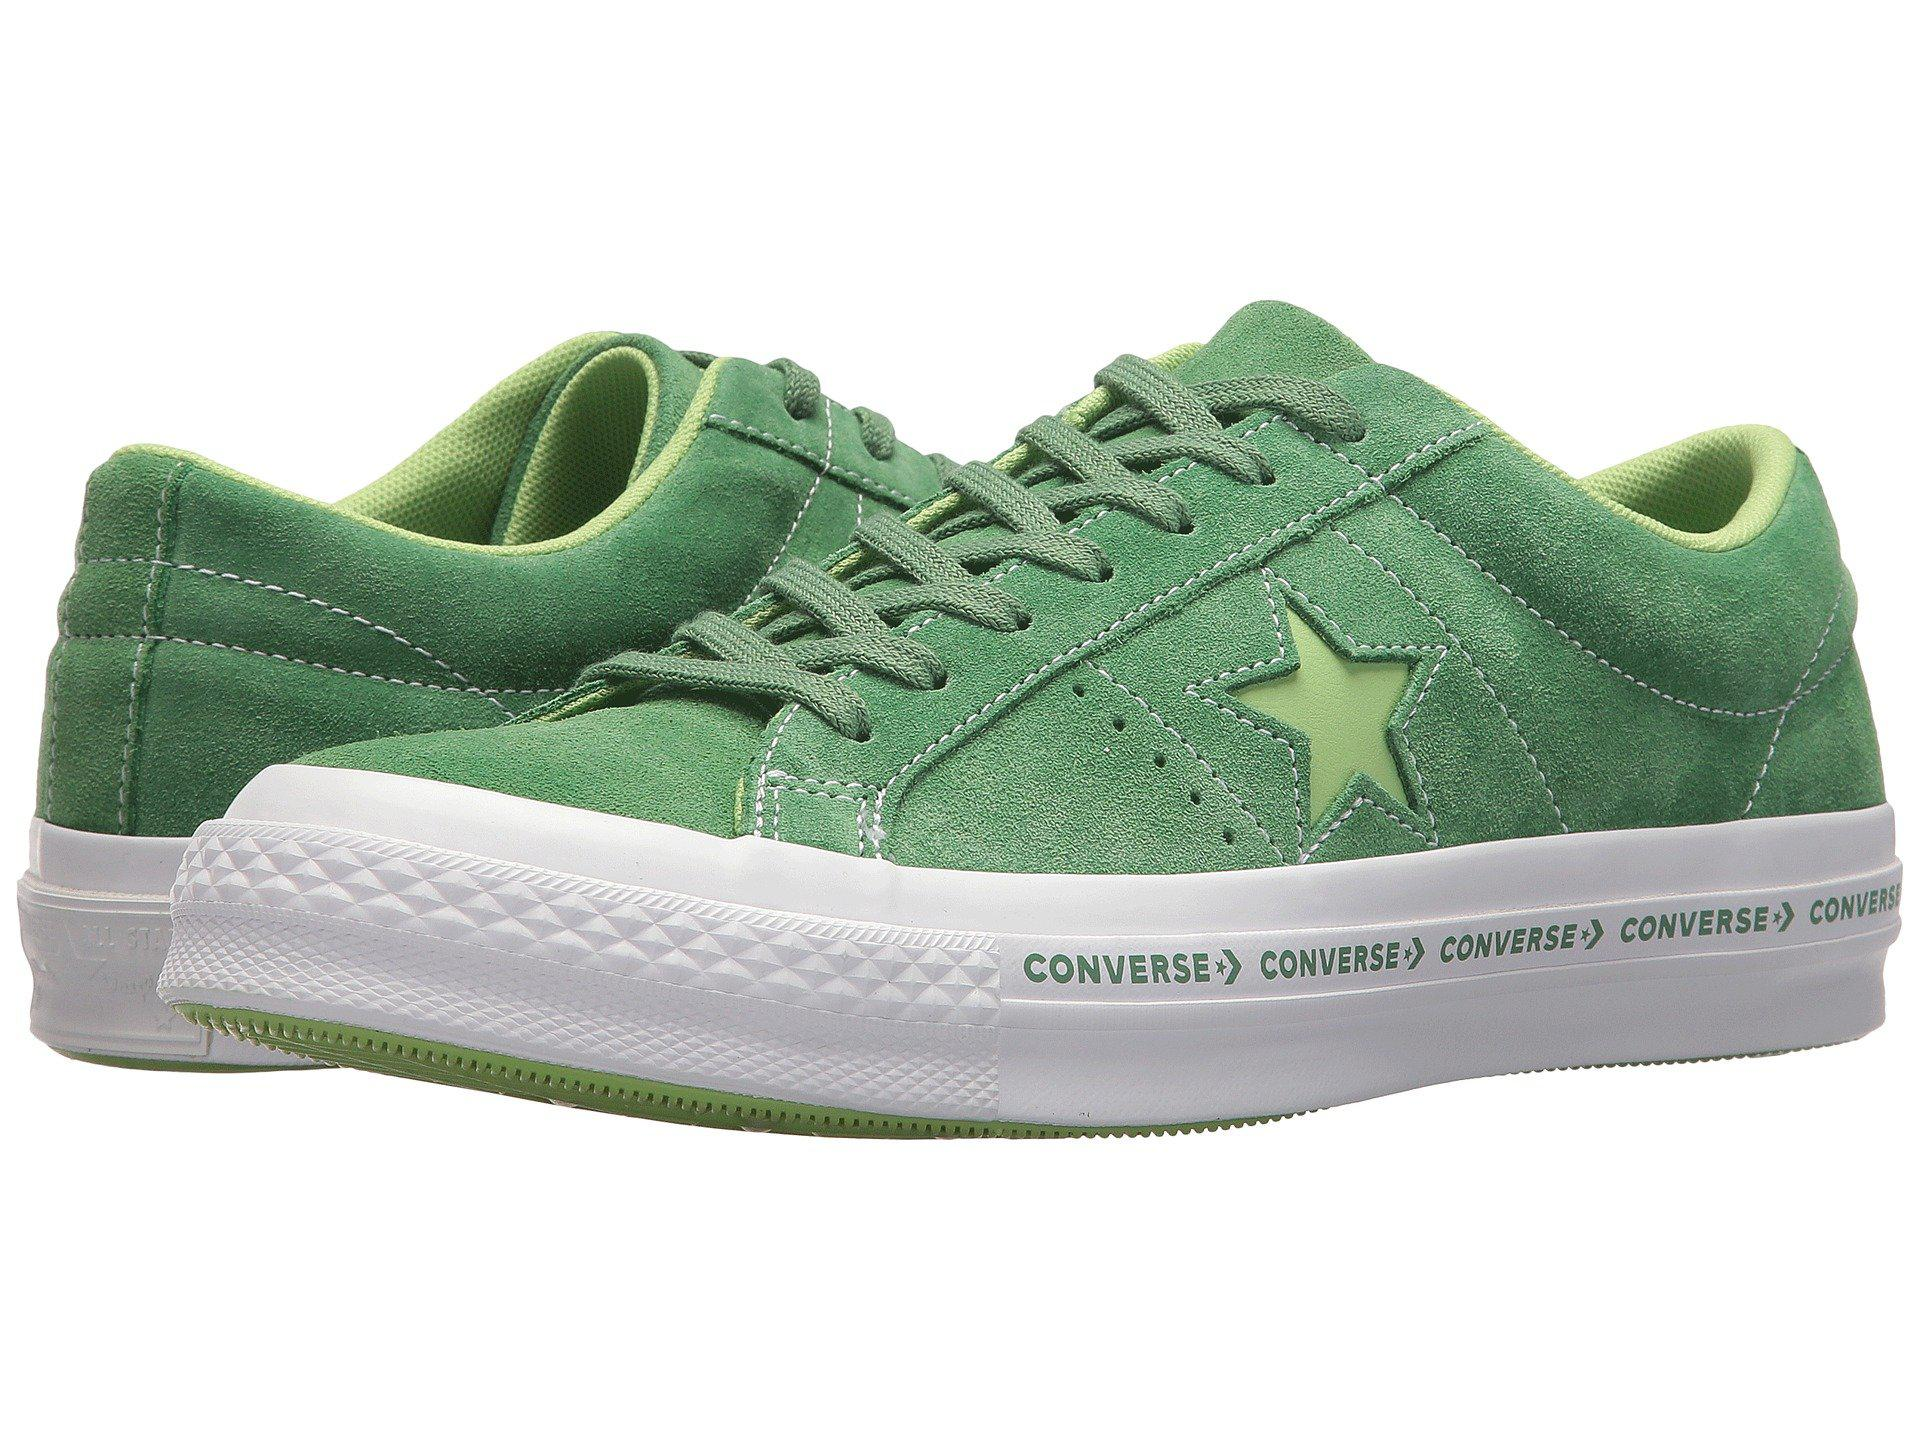 Lyst - Converse One Star Ox Trainers in Green for Men 73b8607df